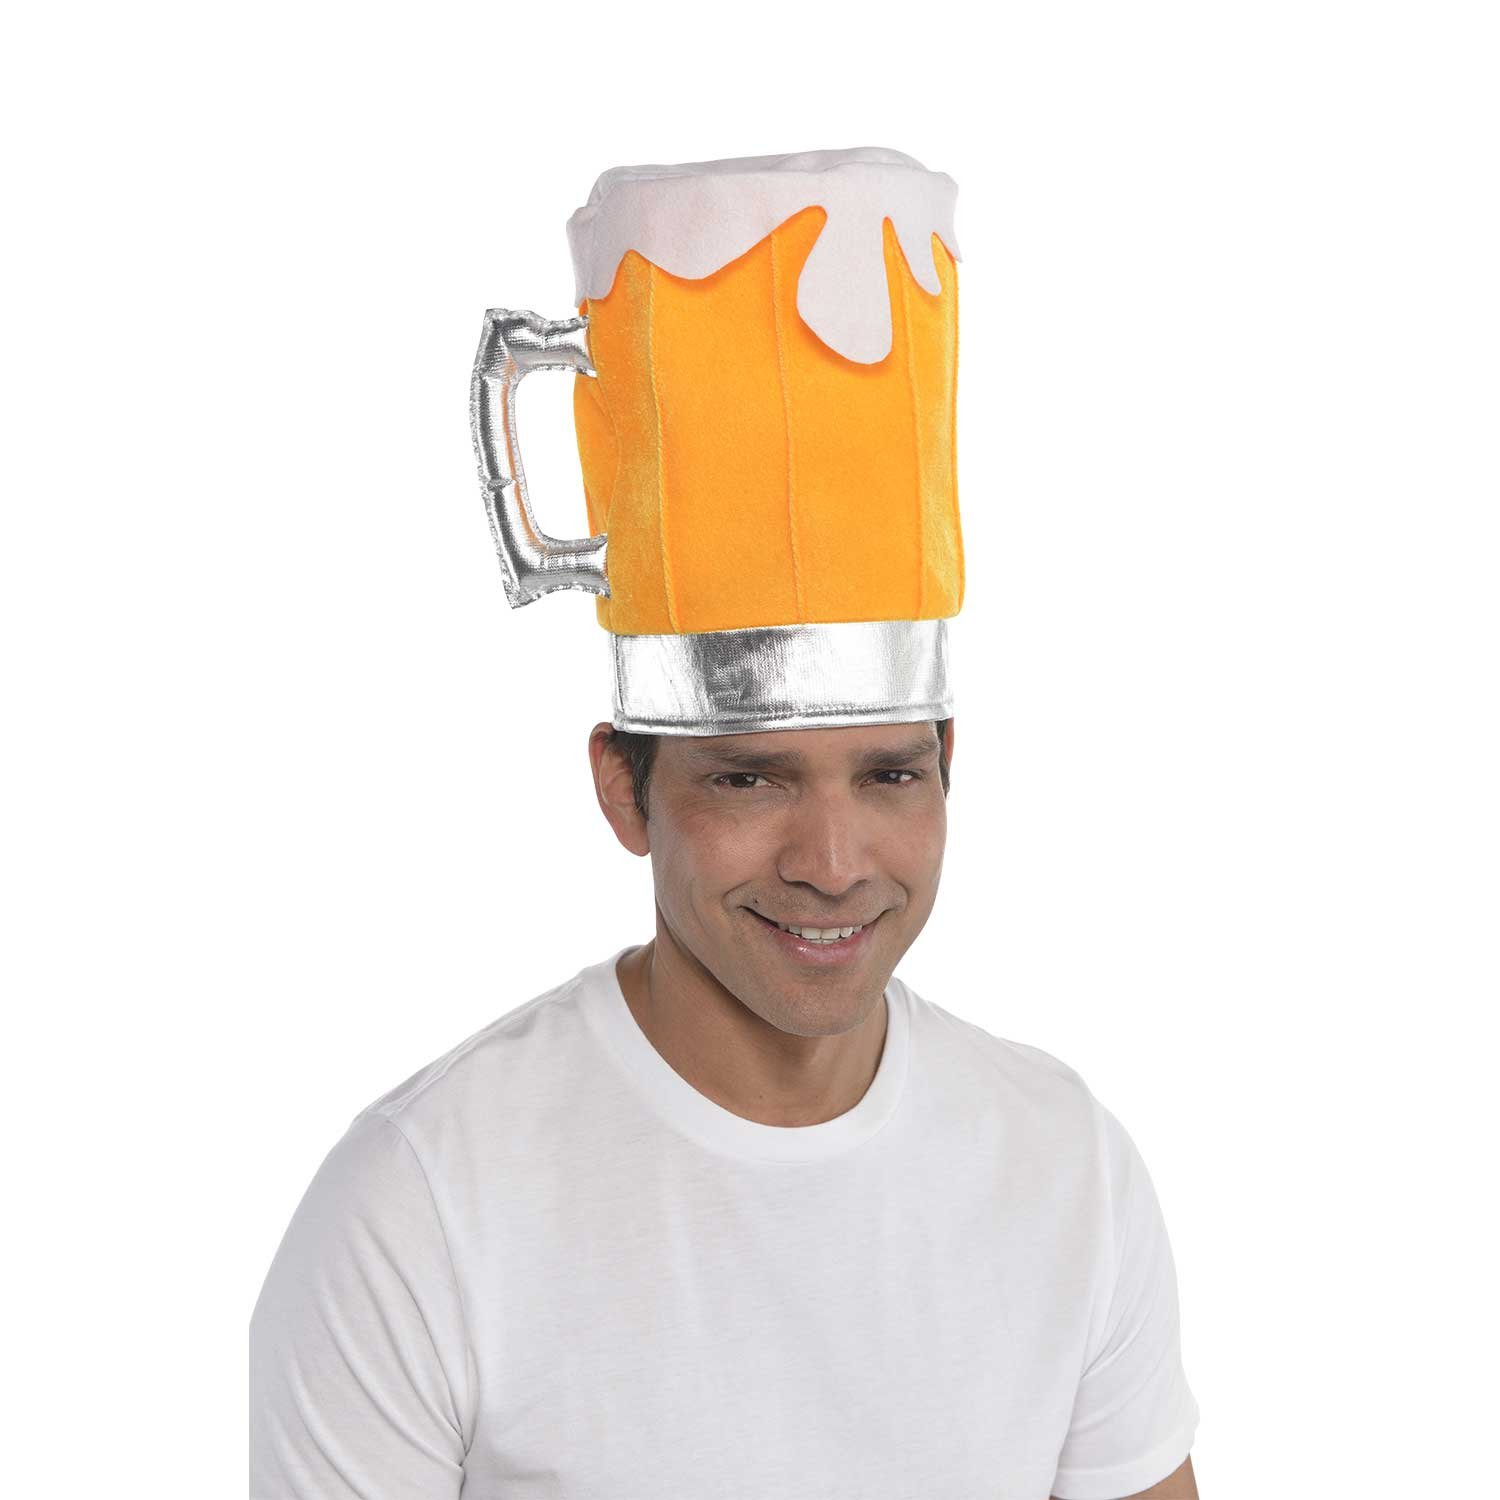 Beer Pint Pot Glass Hat Fancy Dress Stag Party Costume Accessory Party Chap 846195